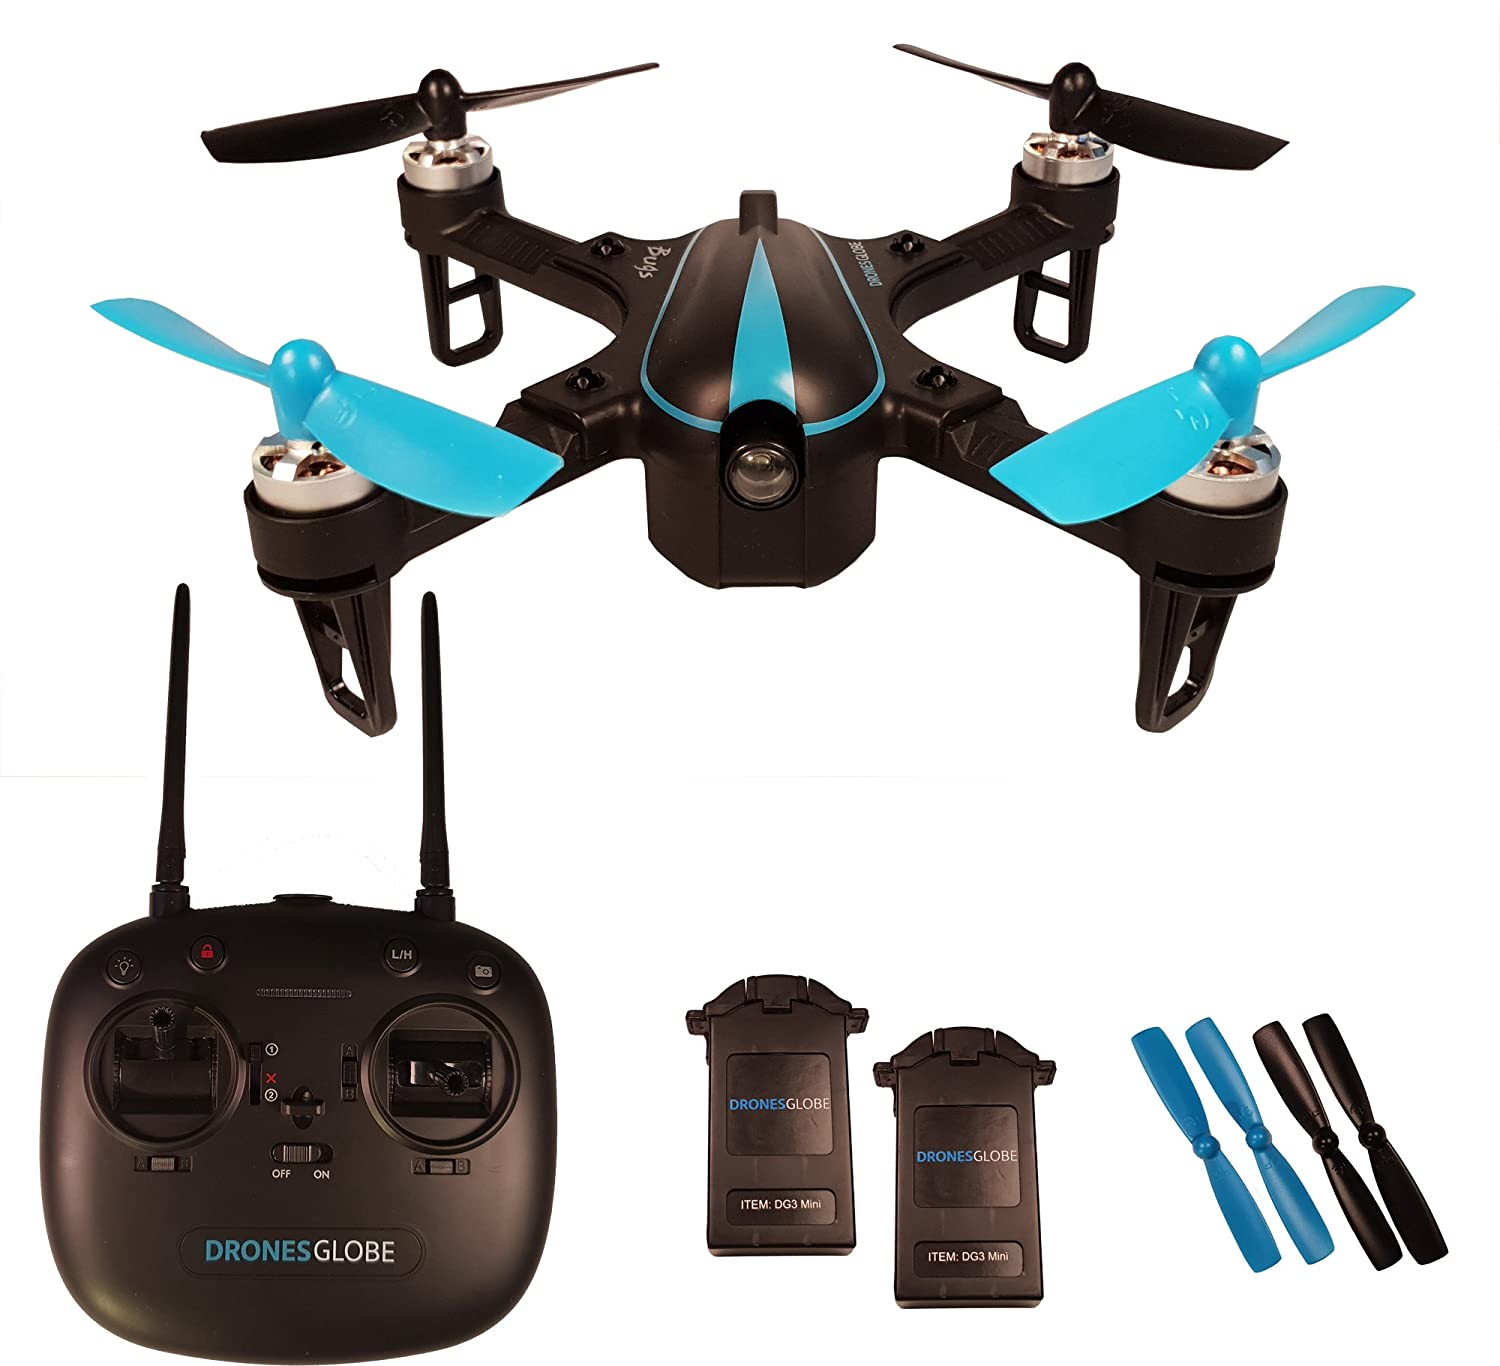 Best Mini Drone 2020 The 13 Best Drones Under 200 2020 2021 Buyers Guide